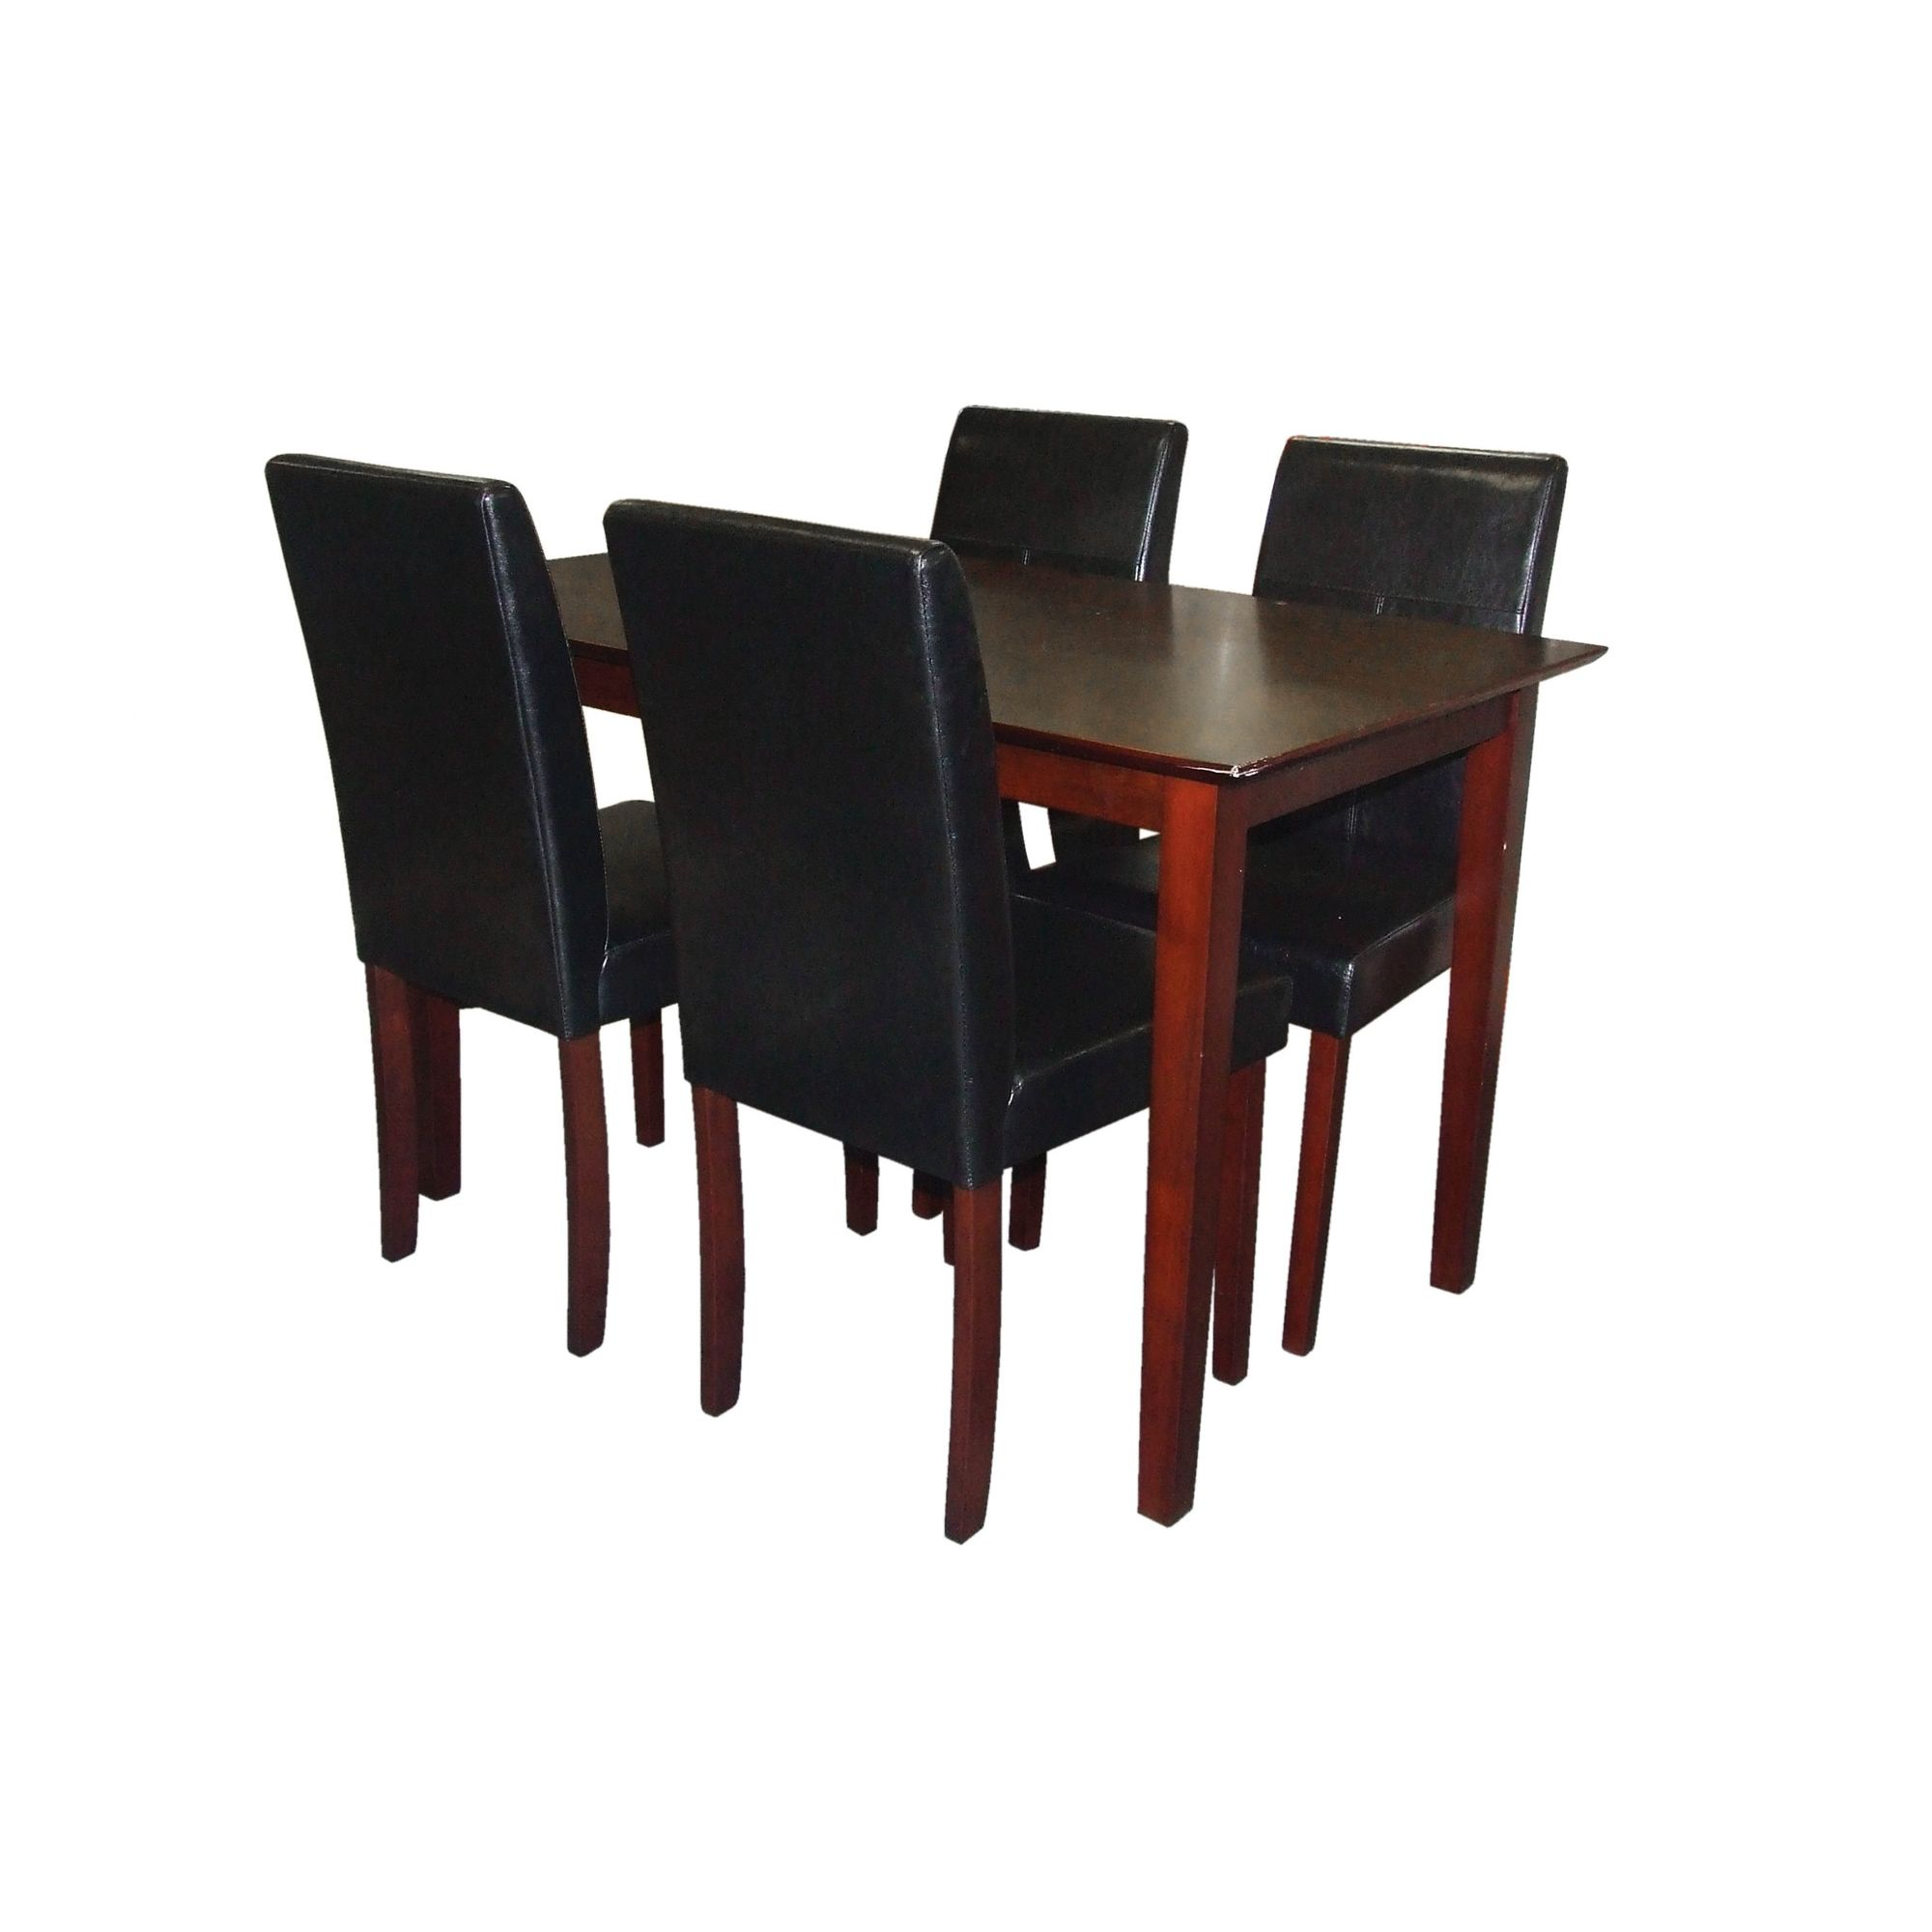 Premier Housewares 5 Piece Dining Set with Light Solid Rubberwood Cozinha - Brown at Tescos Direct